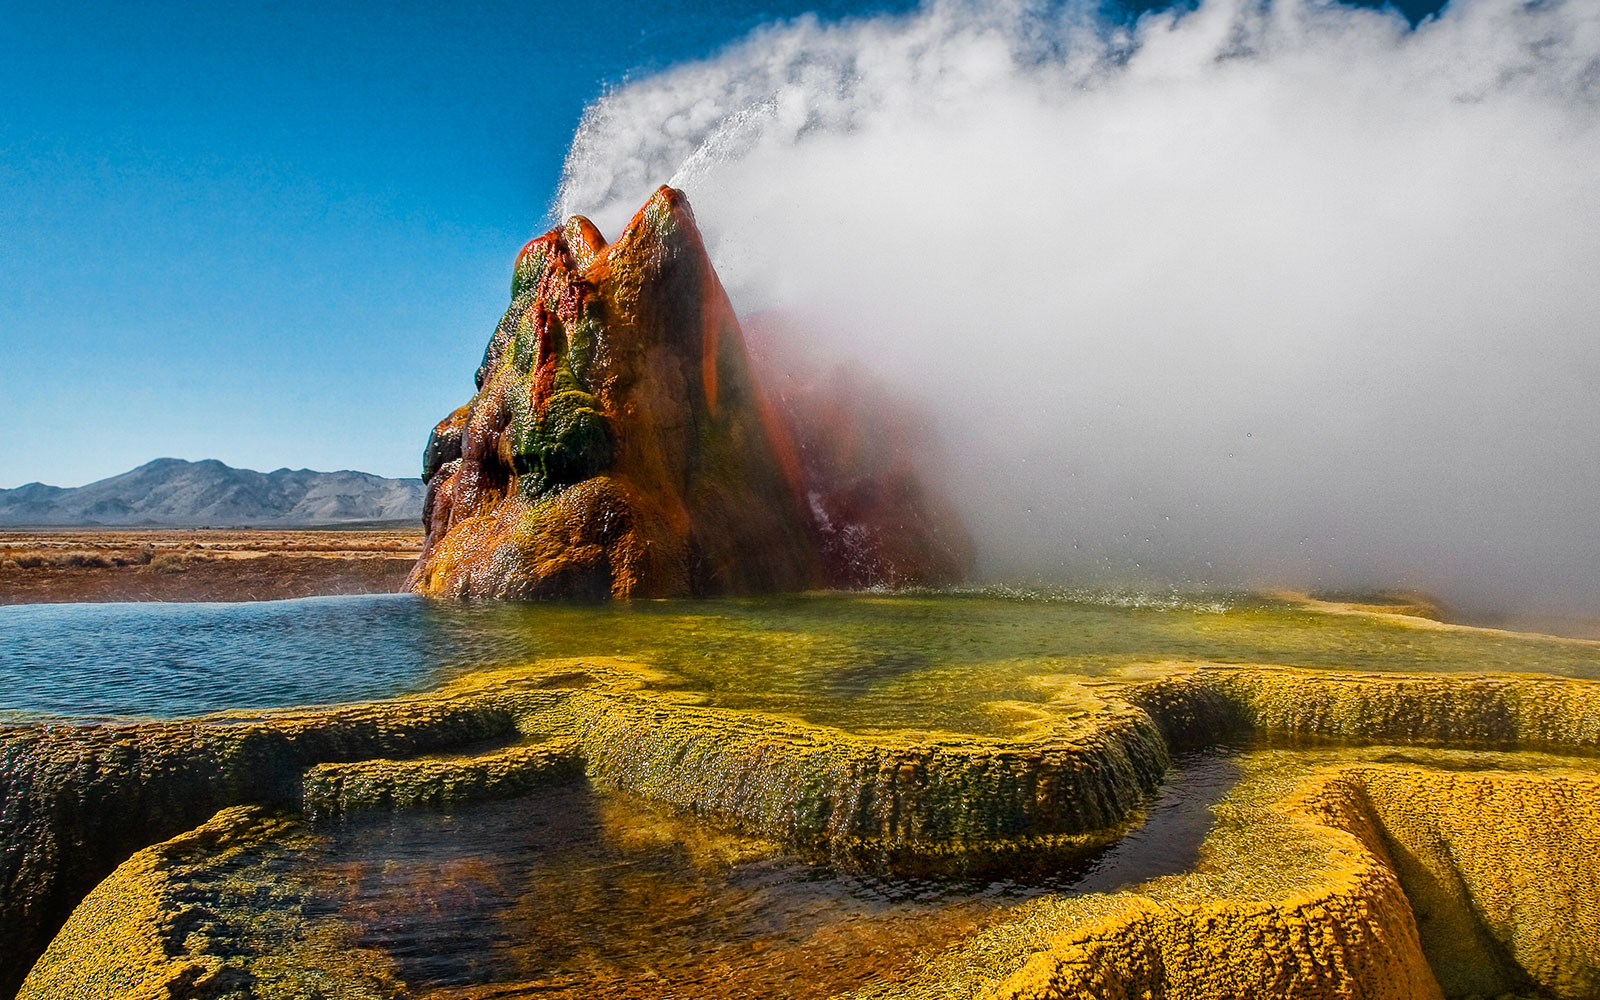 You Can't Visit Fly Geyser, But You're Going to Wish You Could After Seeing These Photos